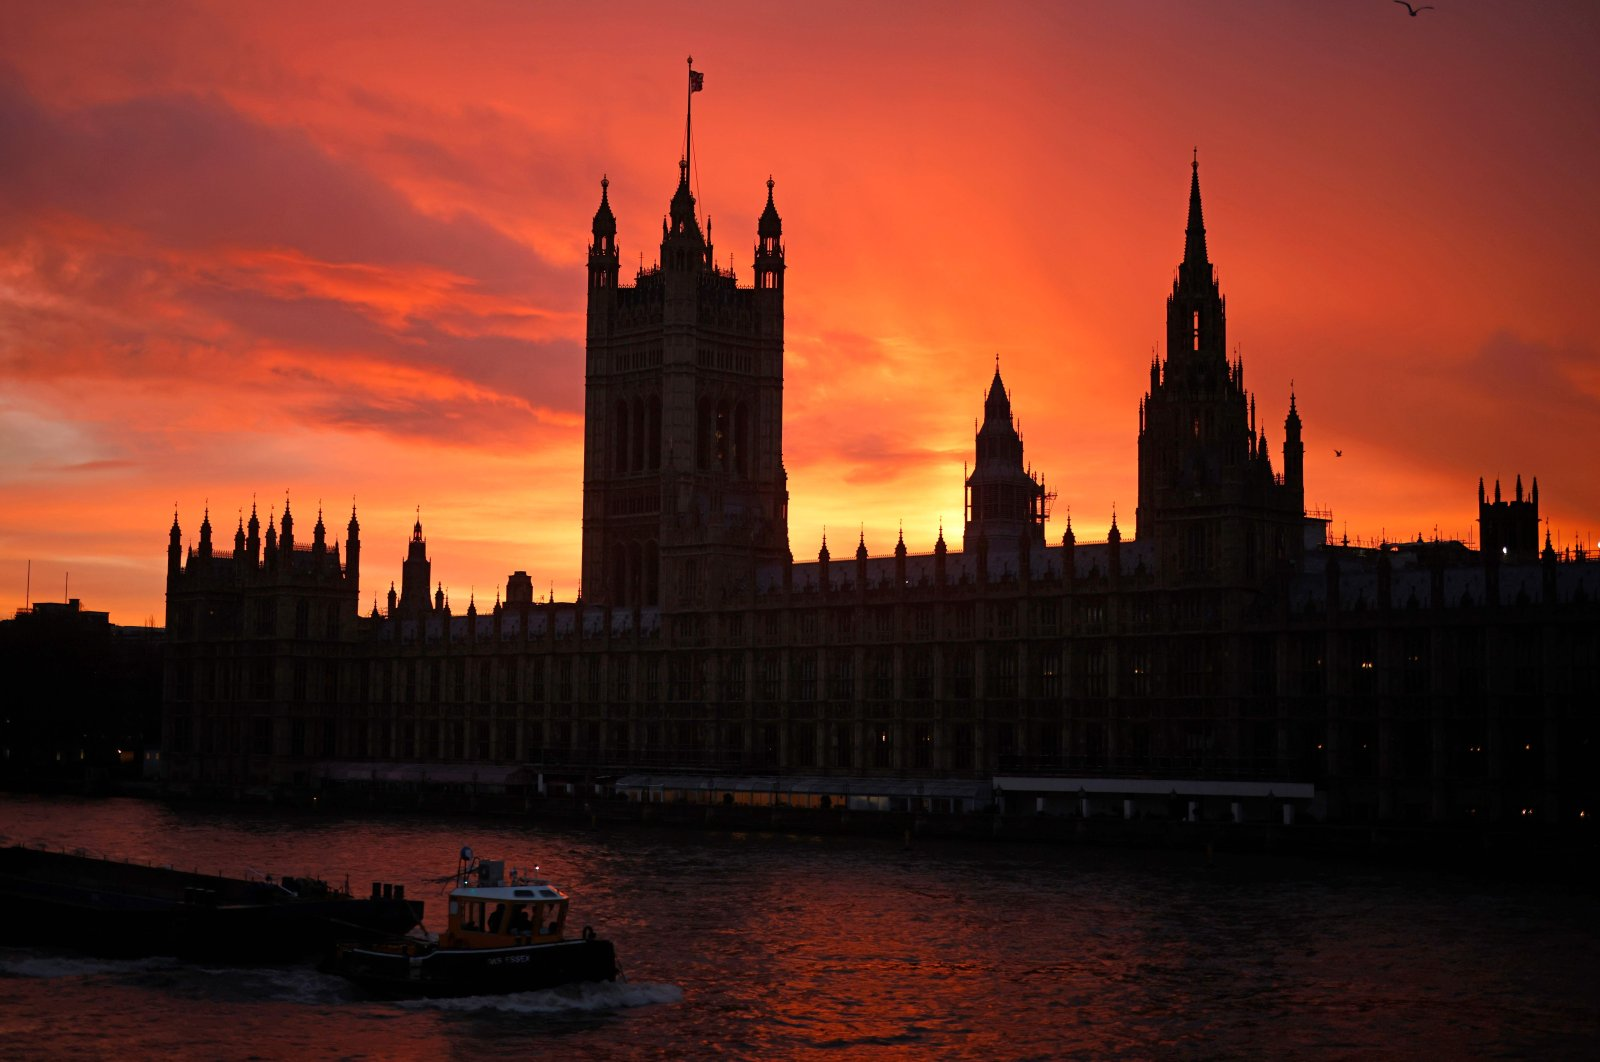 The sun sets behind the Palace of Westminster, the home of the Houses of Parliament, London, Dec. 4, 2020. (AFP Photo)